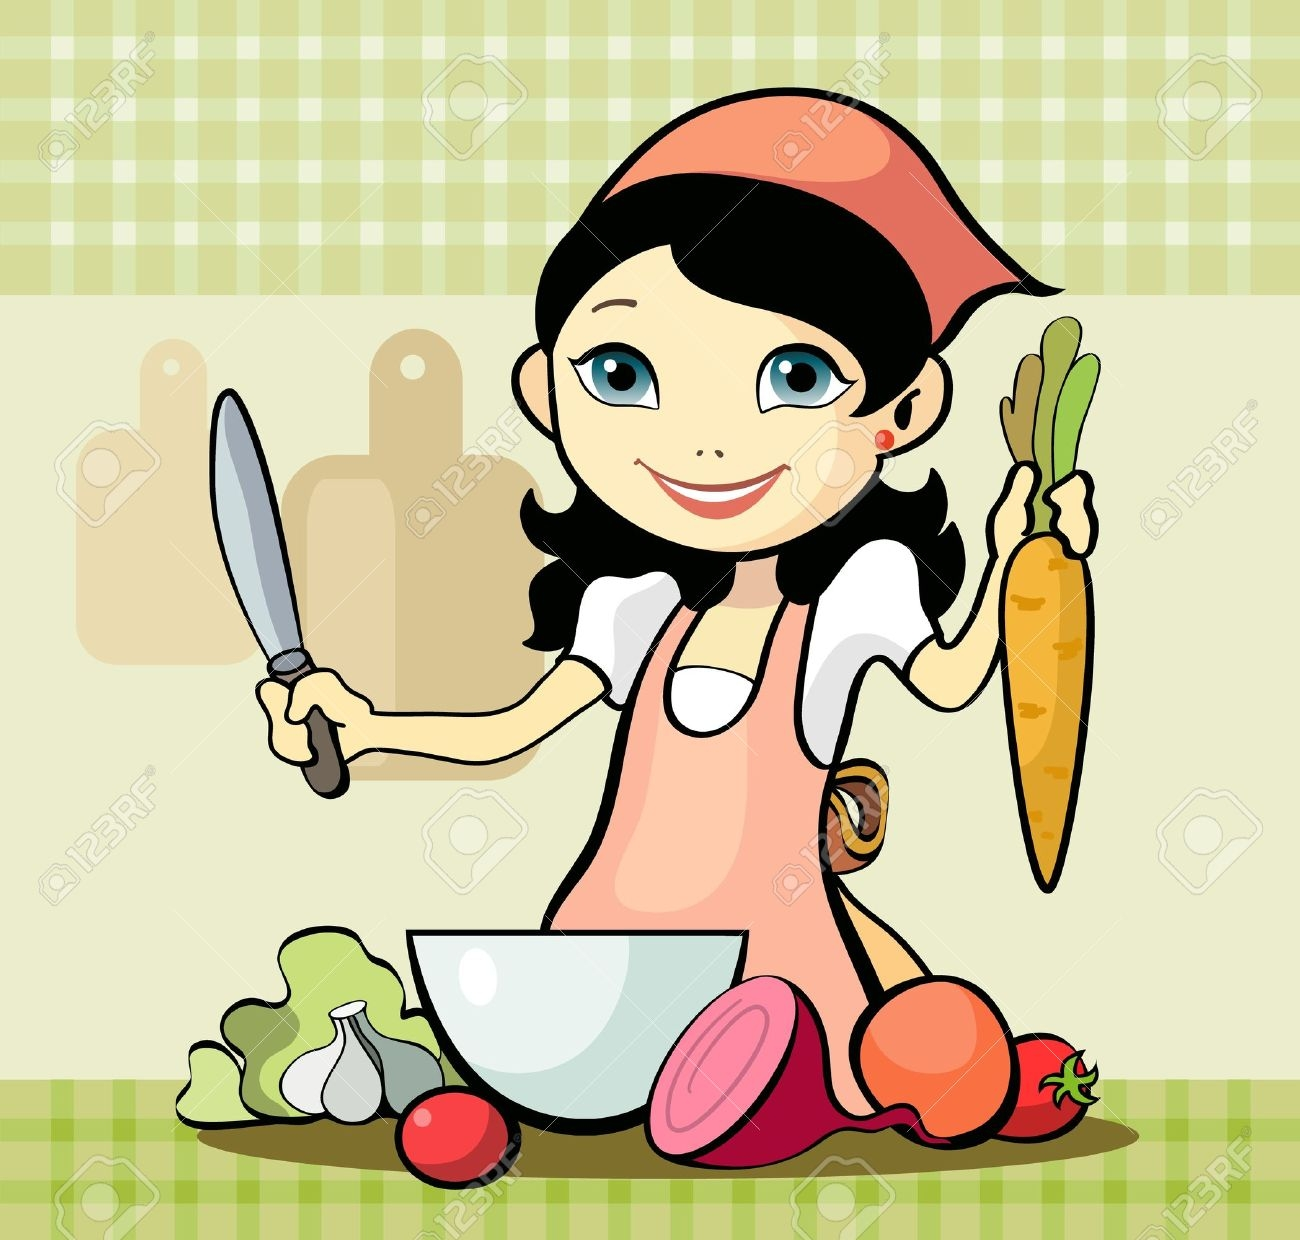 Kitchen chef clipart girl picture library stock Kitchen Chef Clipart Girl - clipartsgram.com picture library stock